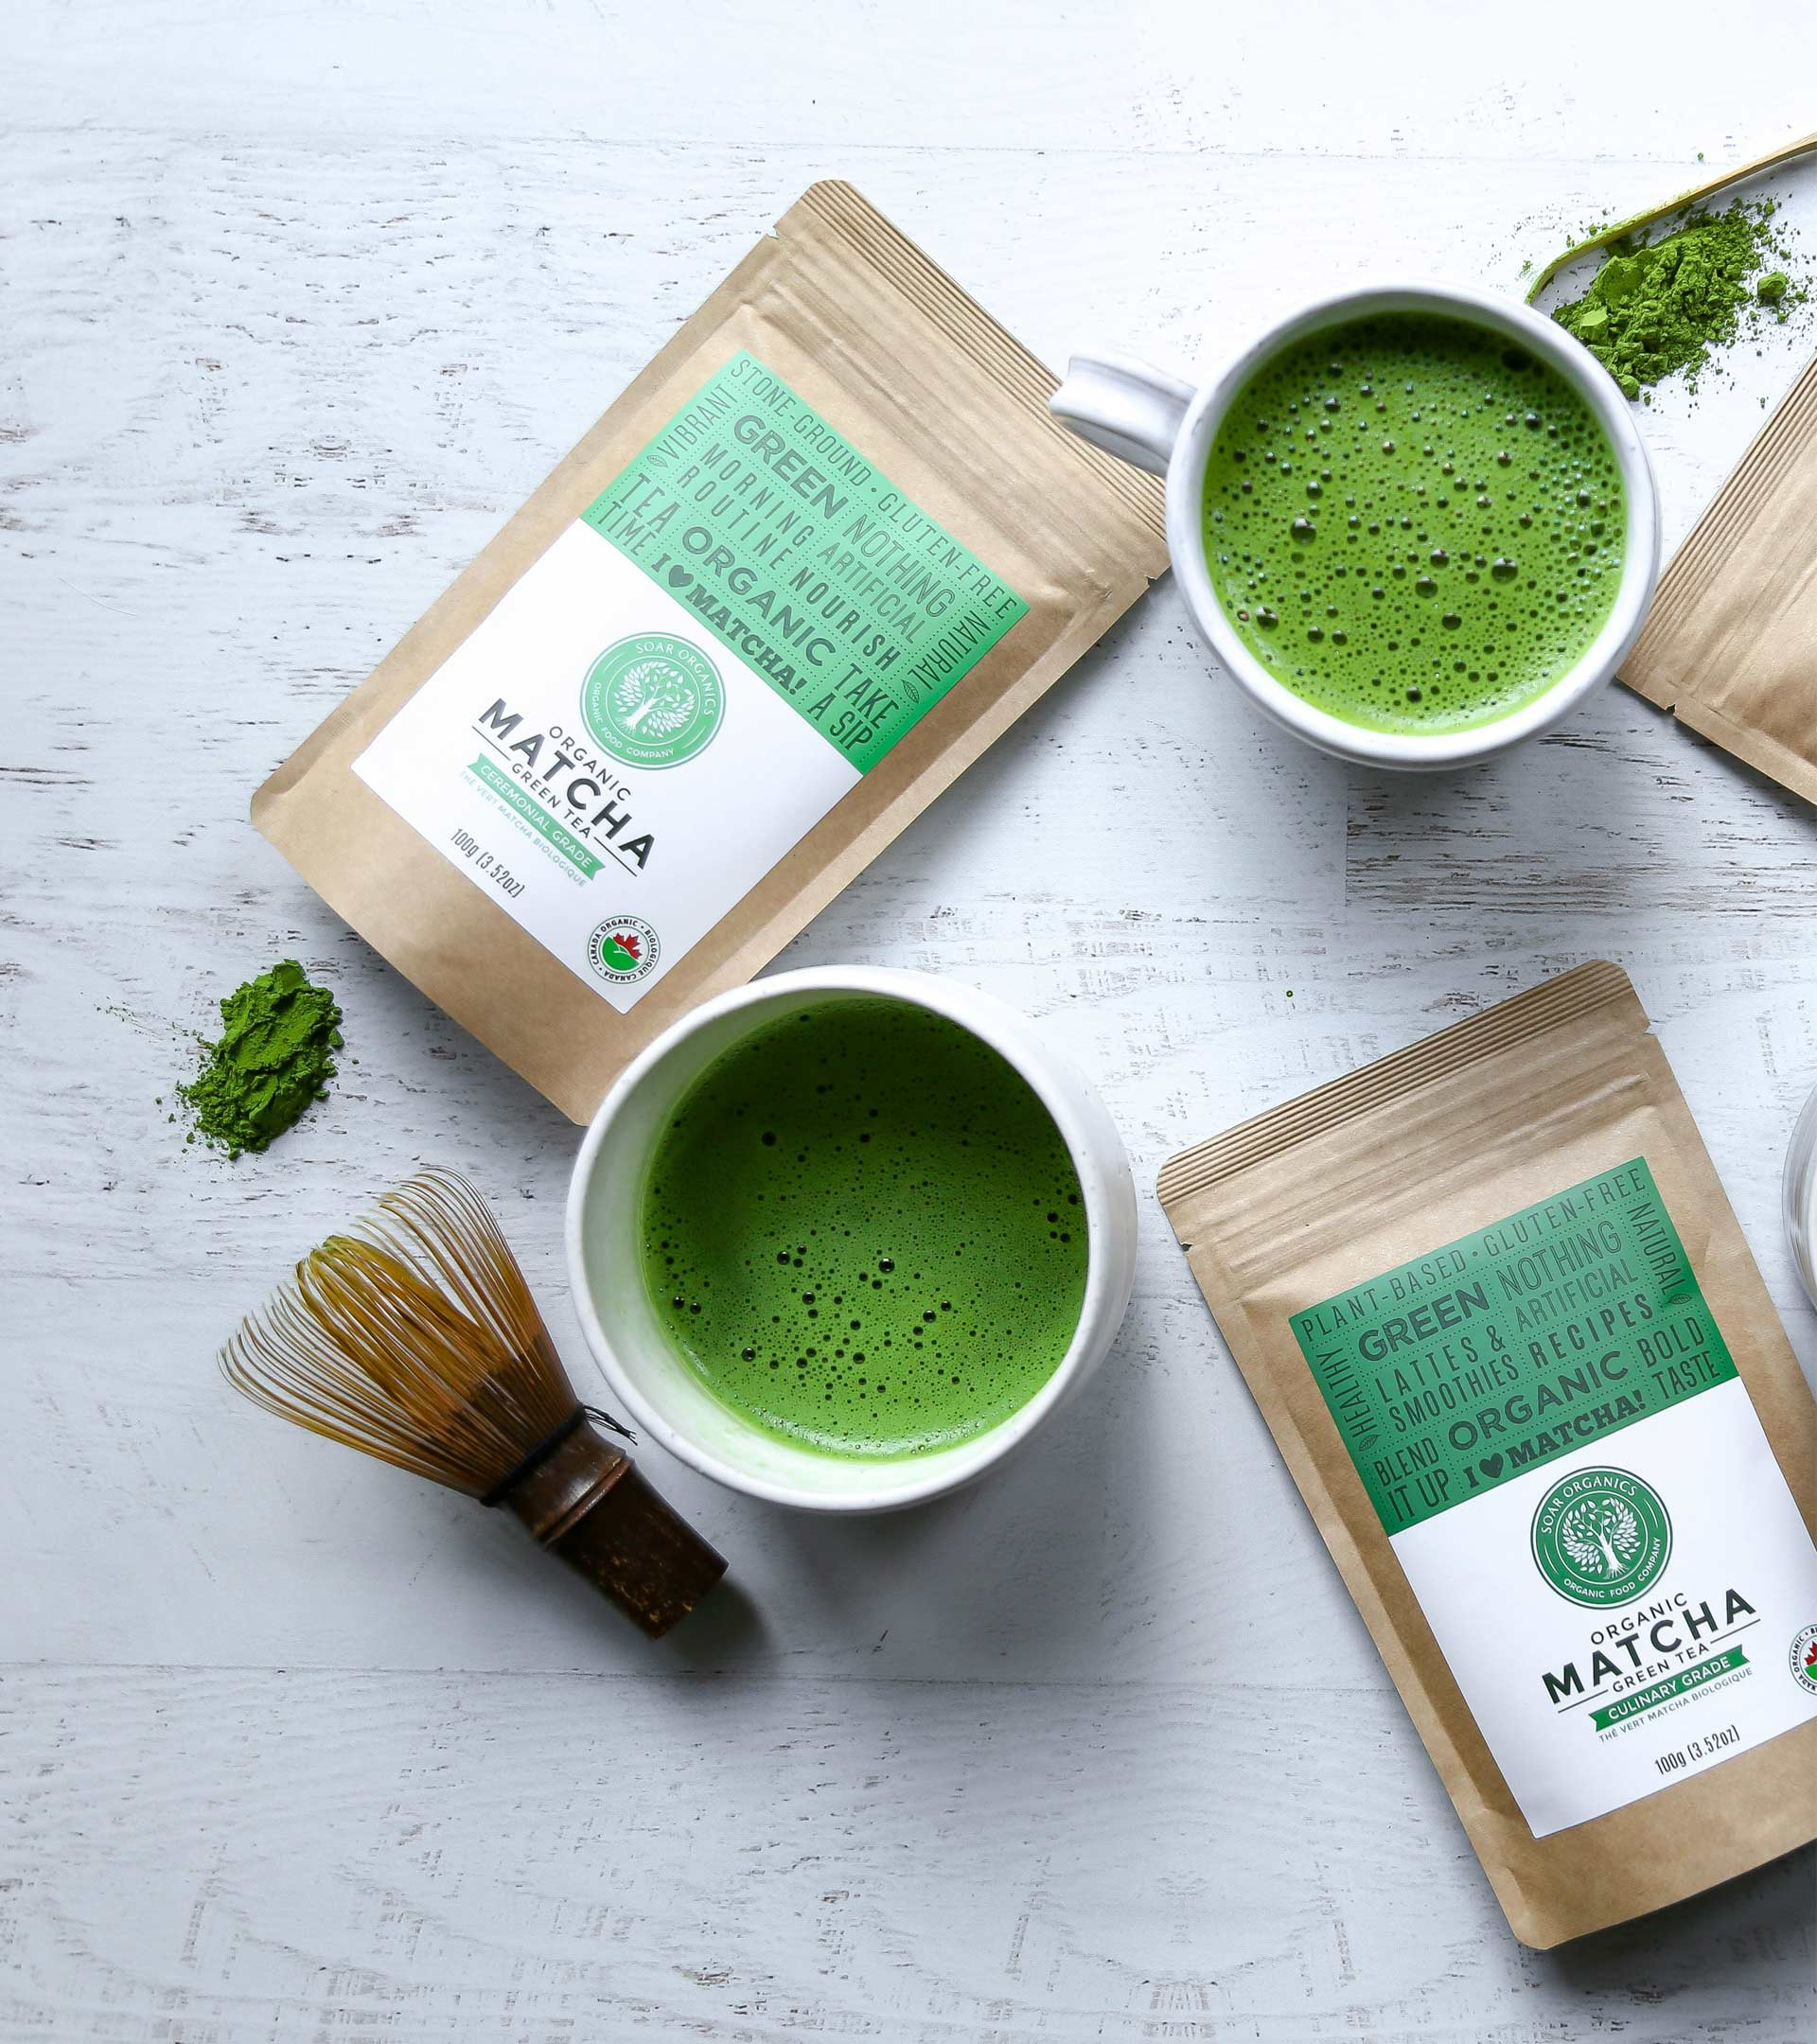 Soar Organics Matcha Buyer's Guide